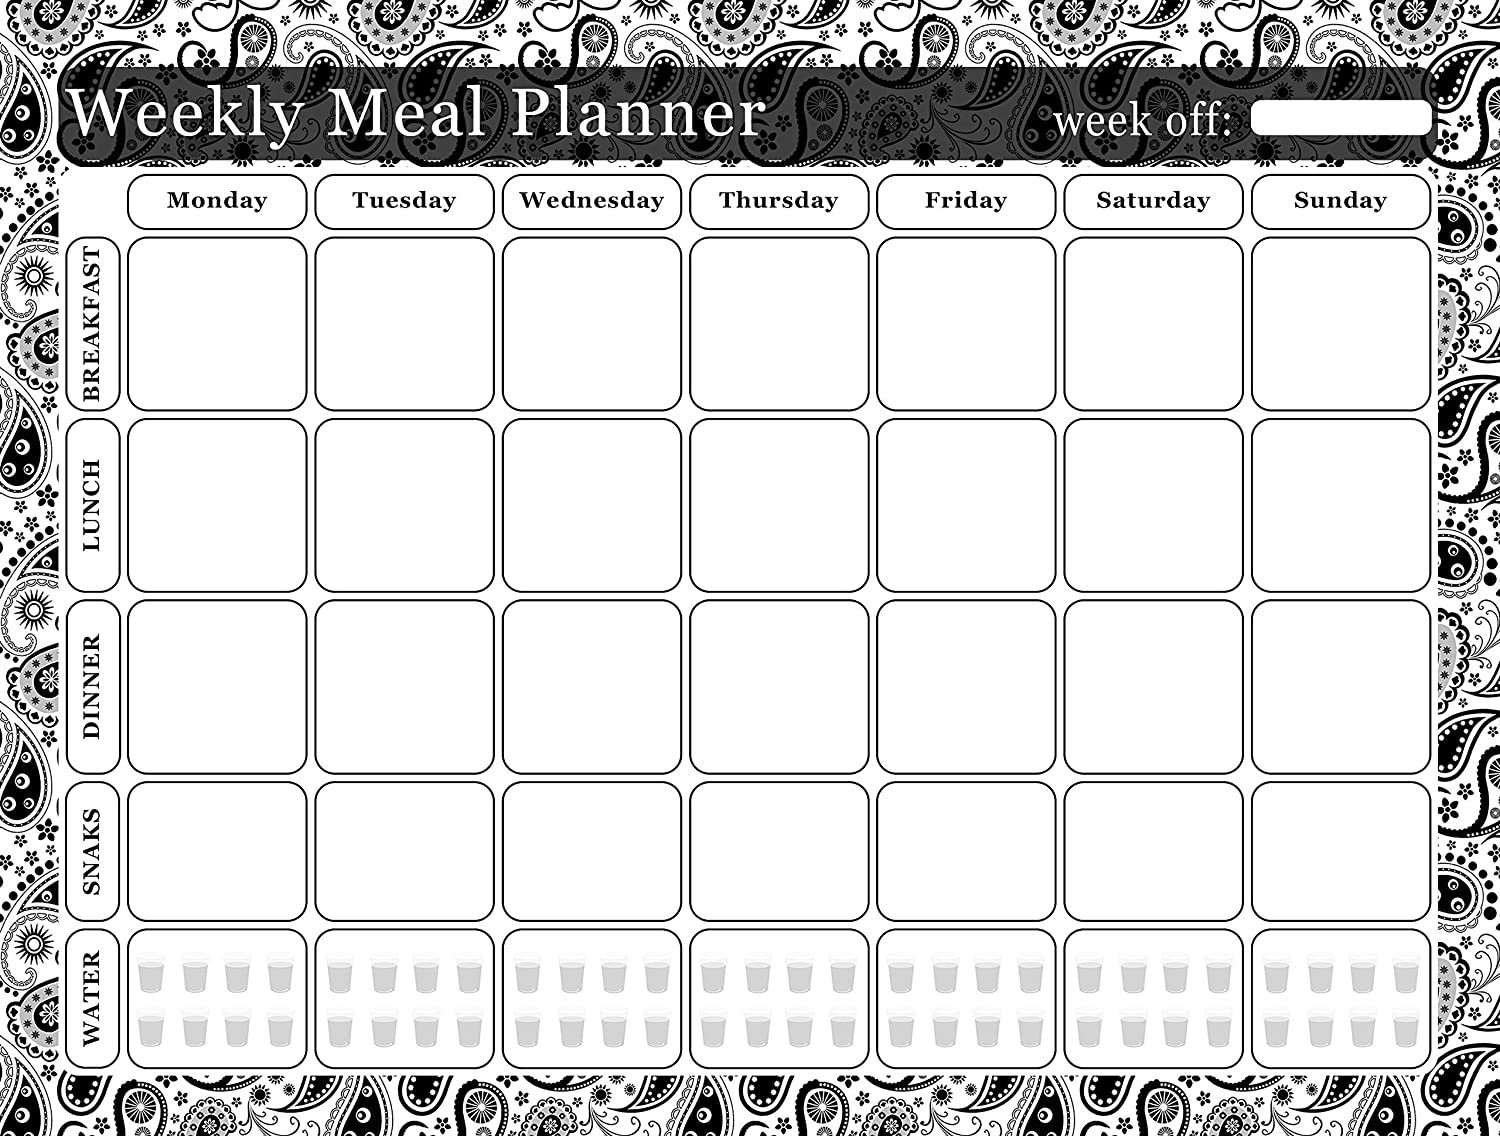 Meal Planner Magnetic Desk Calendar Notepad Menu Food Organizer Weight Loss (02)